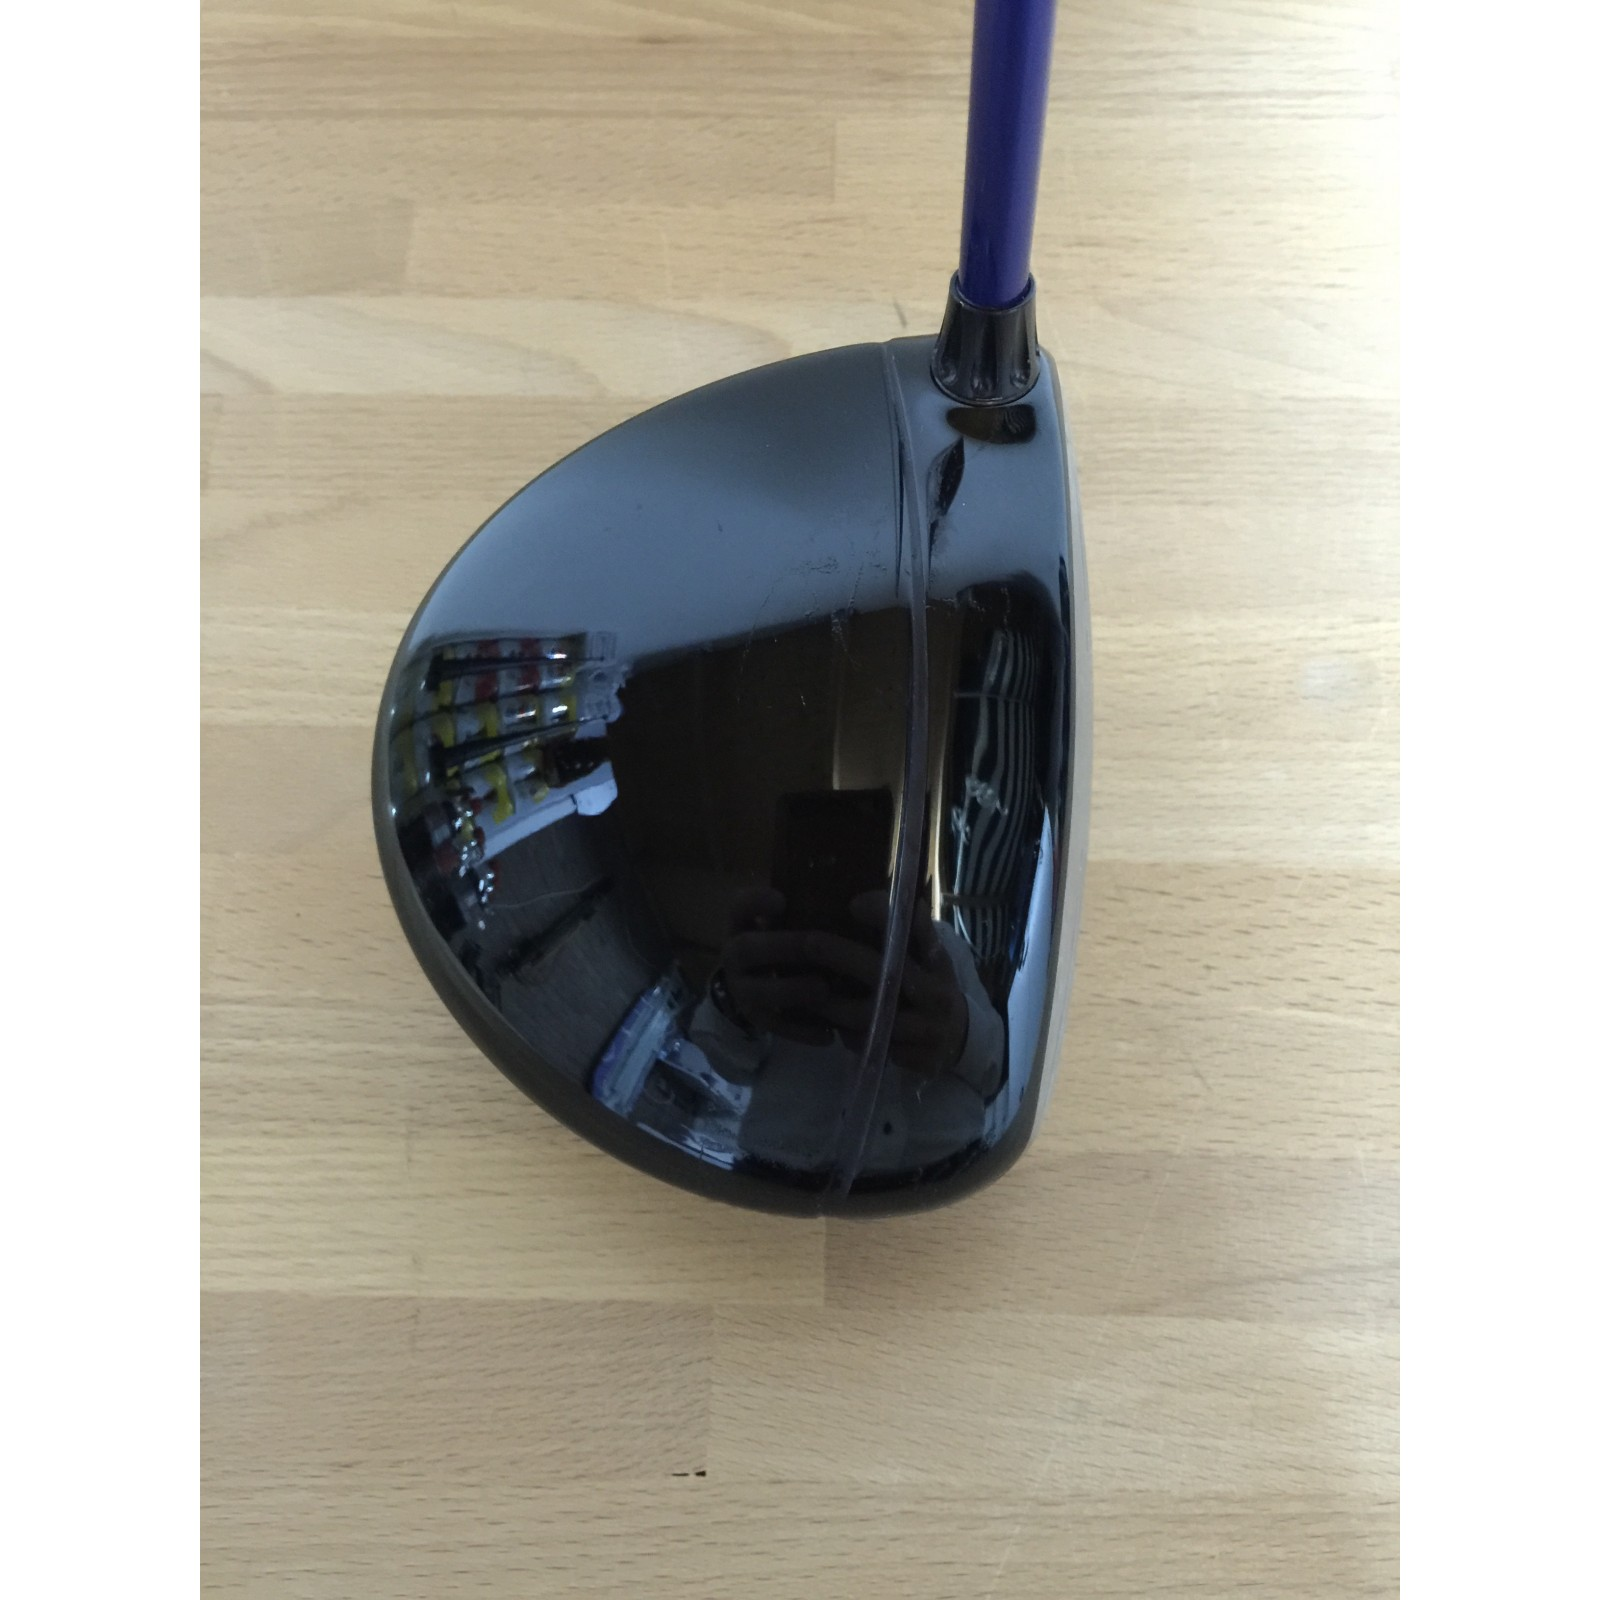 Callaway FT-i/FT-5 Driver Review (Clubs Review) - The Sand Trap